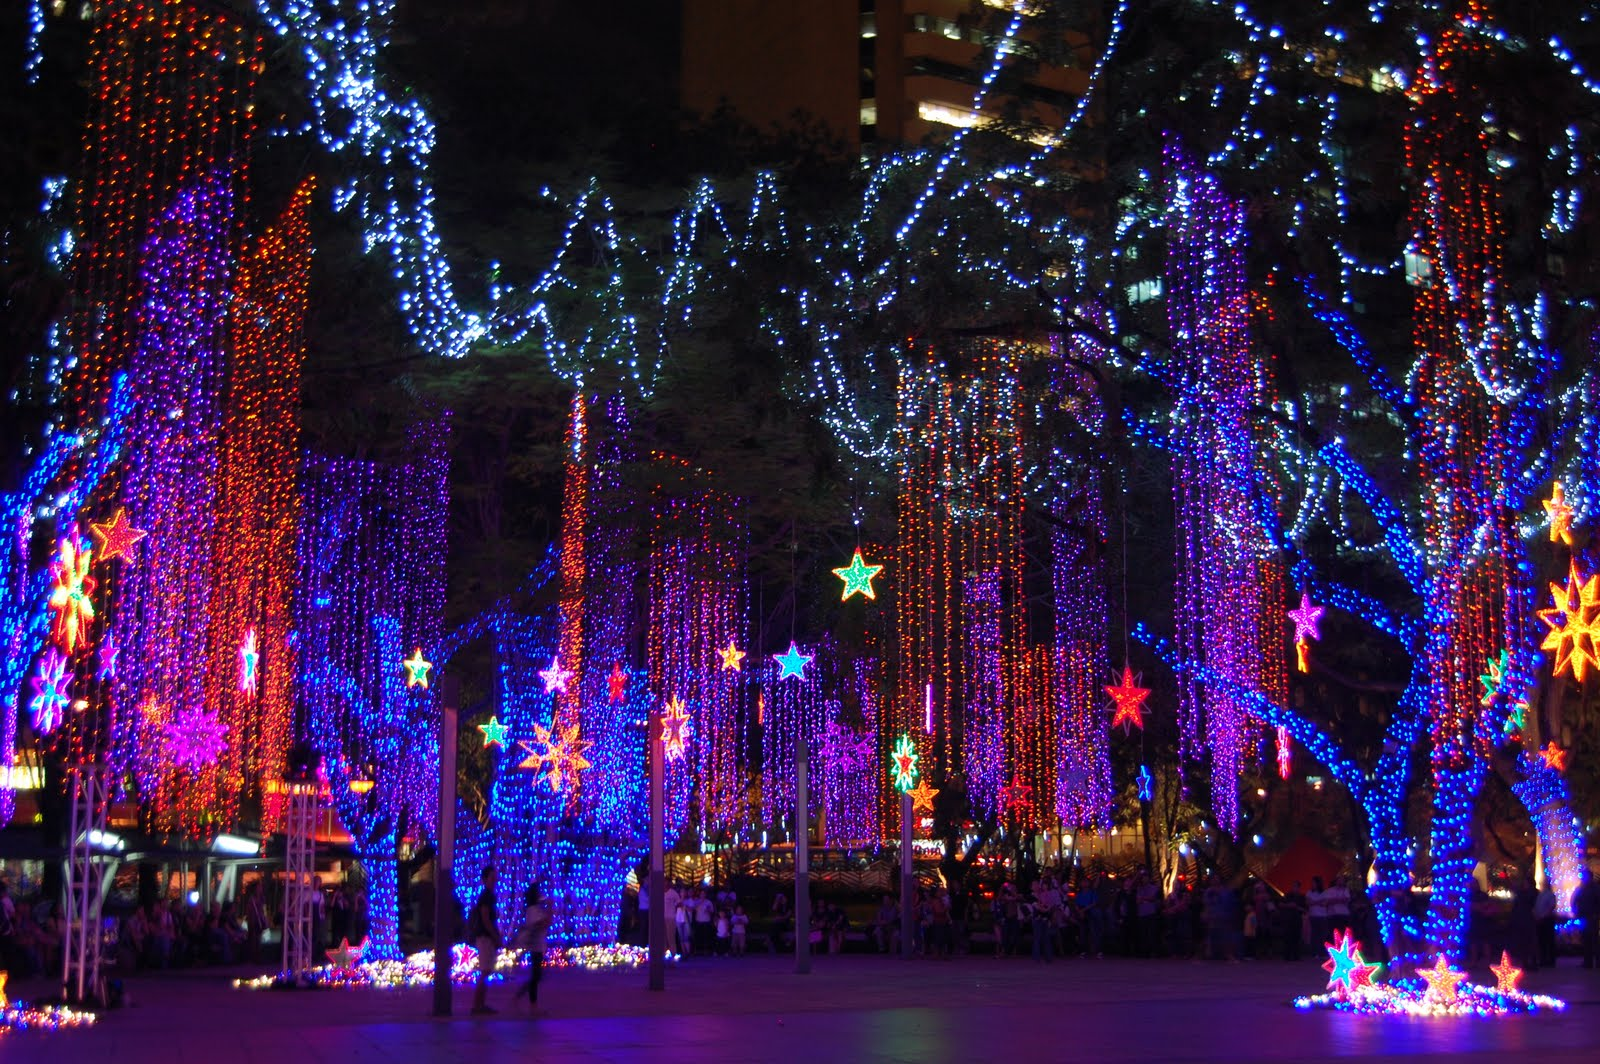 Symphony of lights ayala triangle gardens brain drain